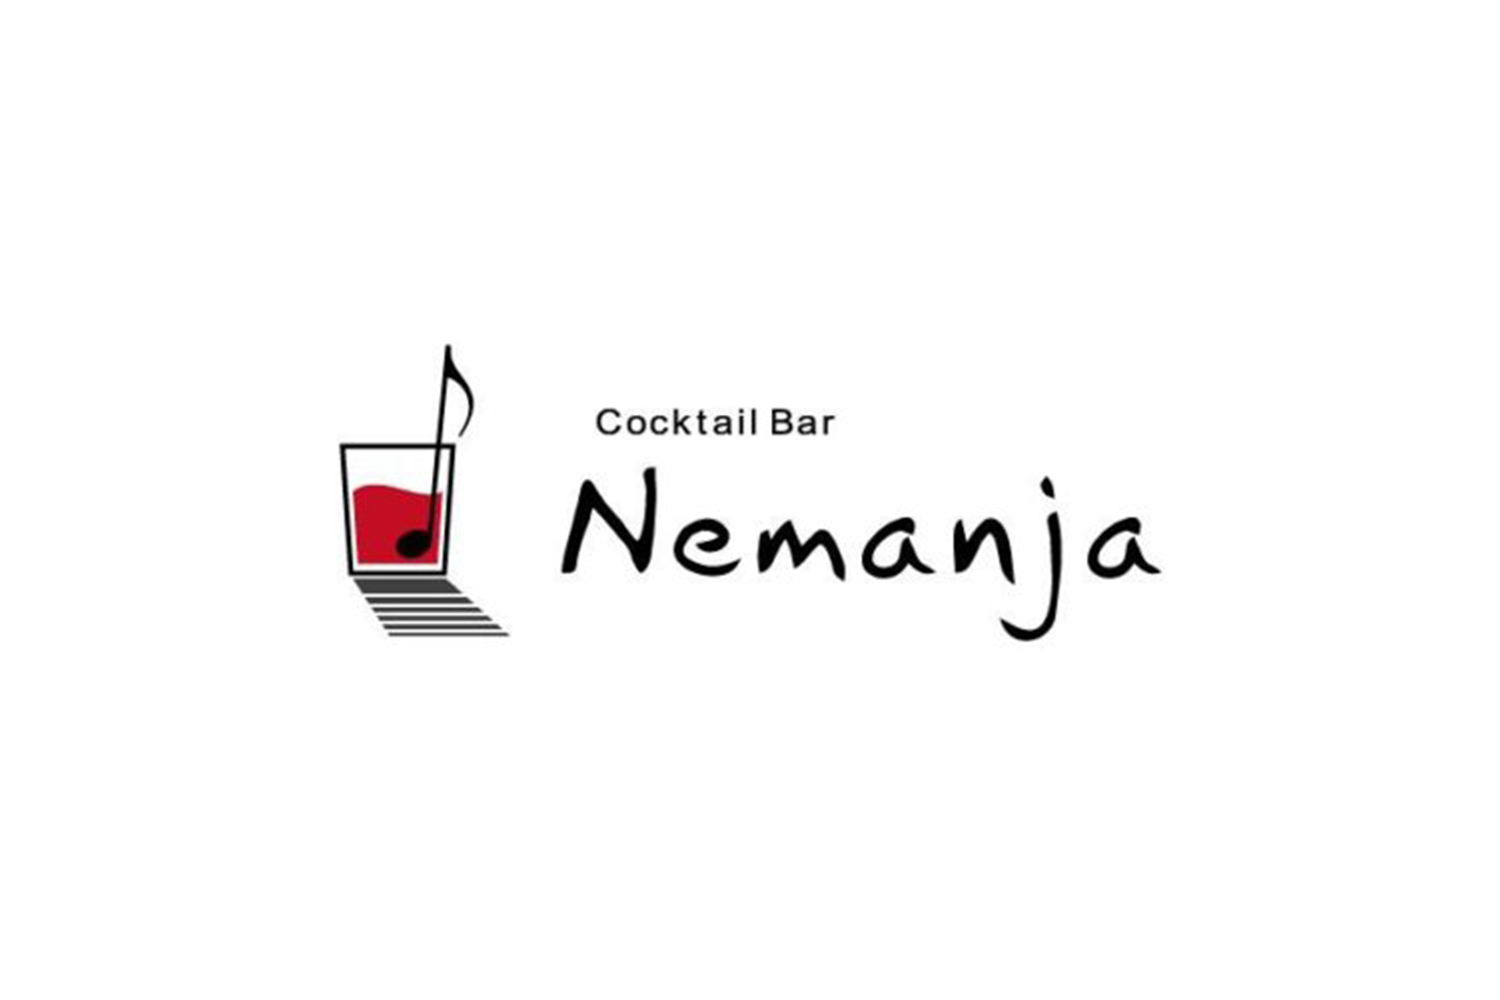 Cocktail Bar Nemanja